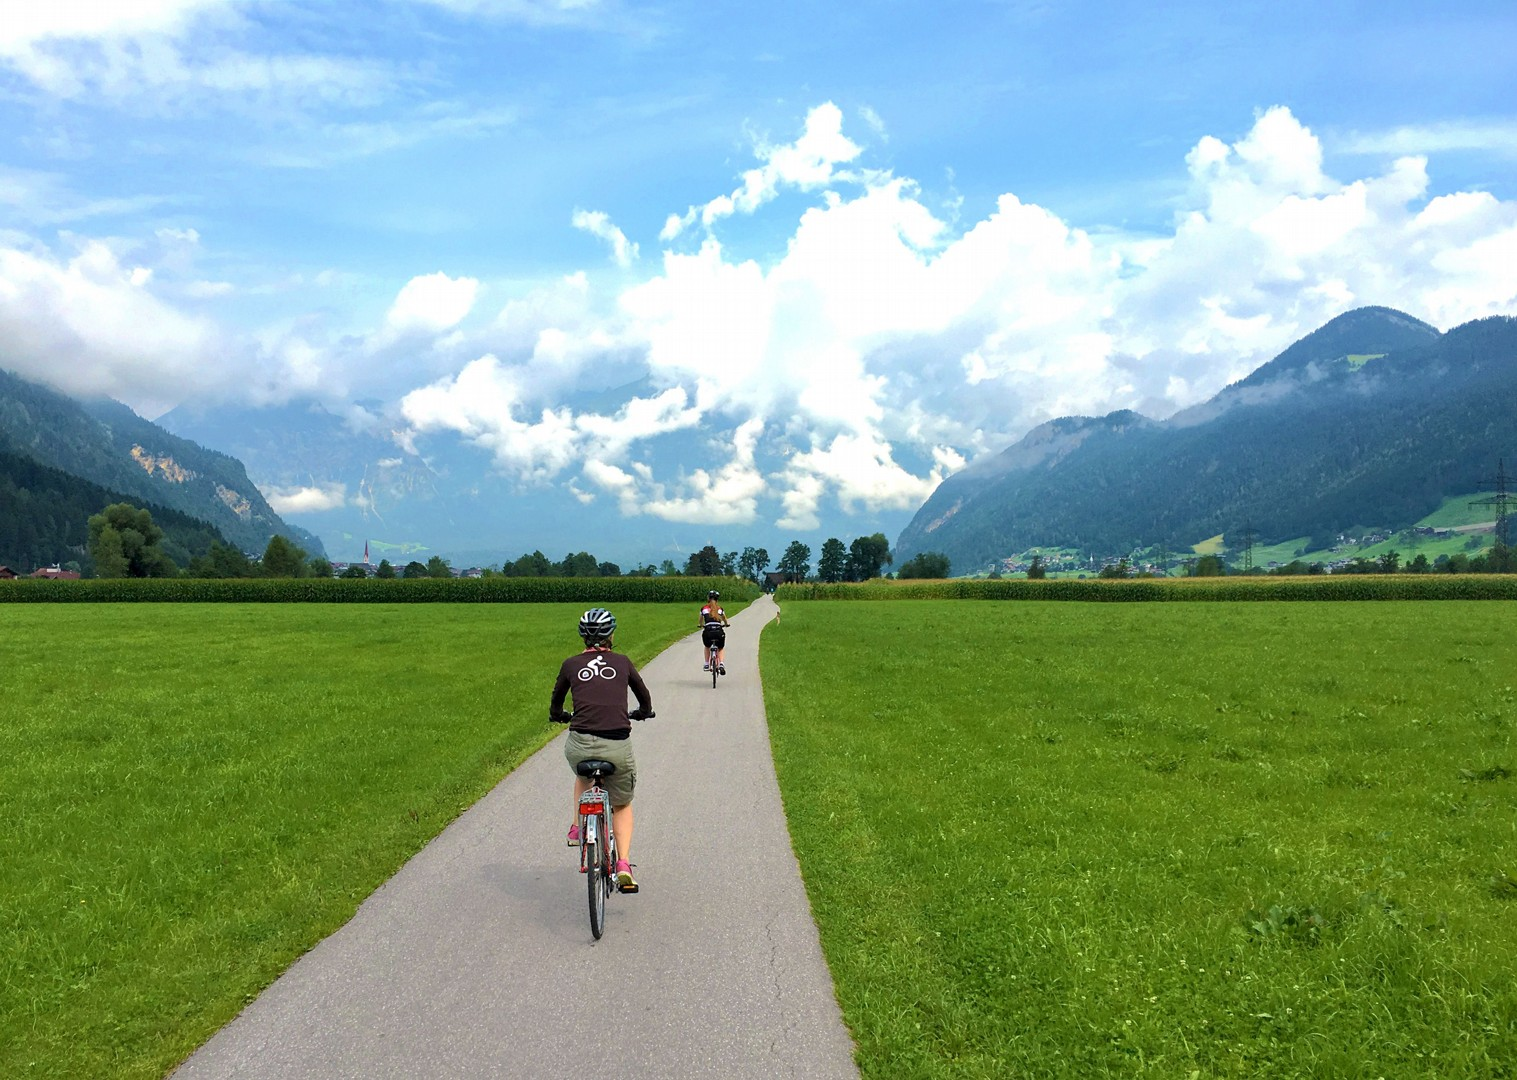 panoramic-views-of-austria-on-bike-saddle-skedaddle.jpg - Austria - Tauern Valleys - Self-Guided Leisure Cycling Holiday - Leisure Cycling